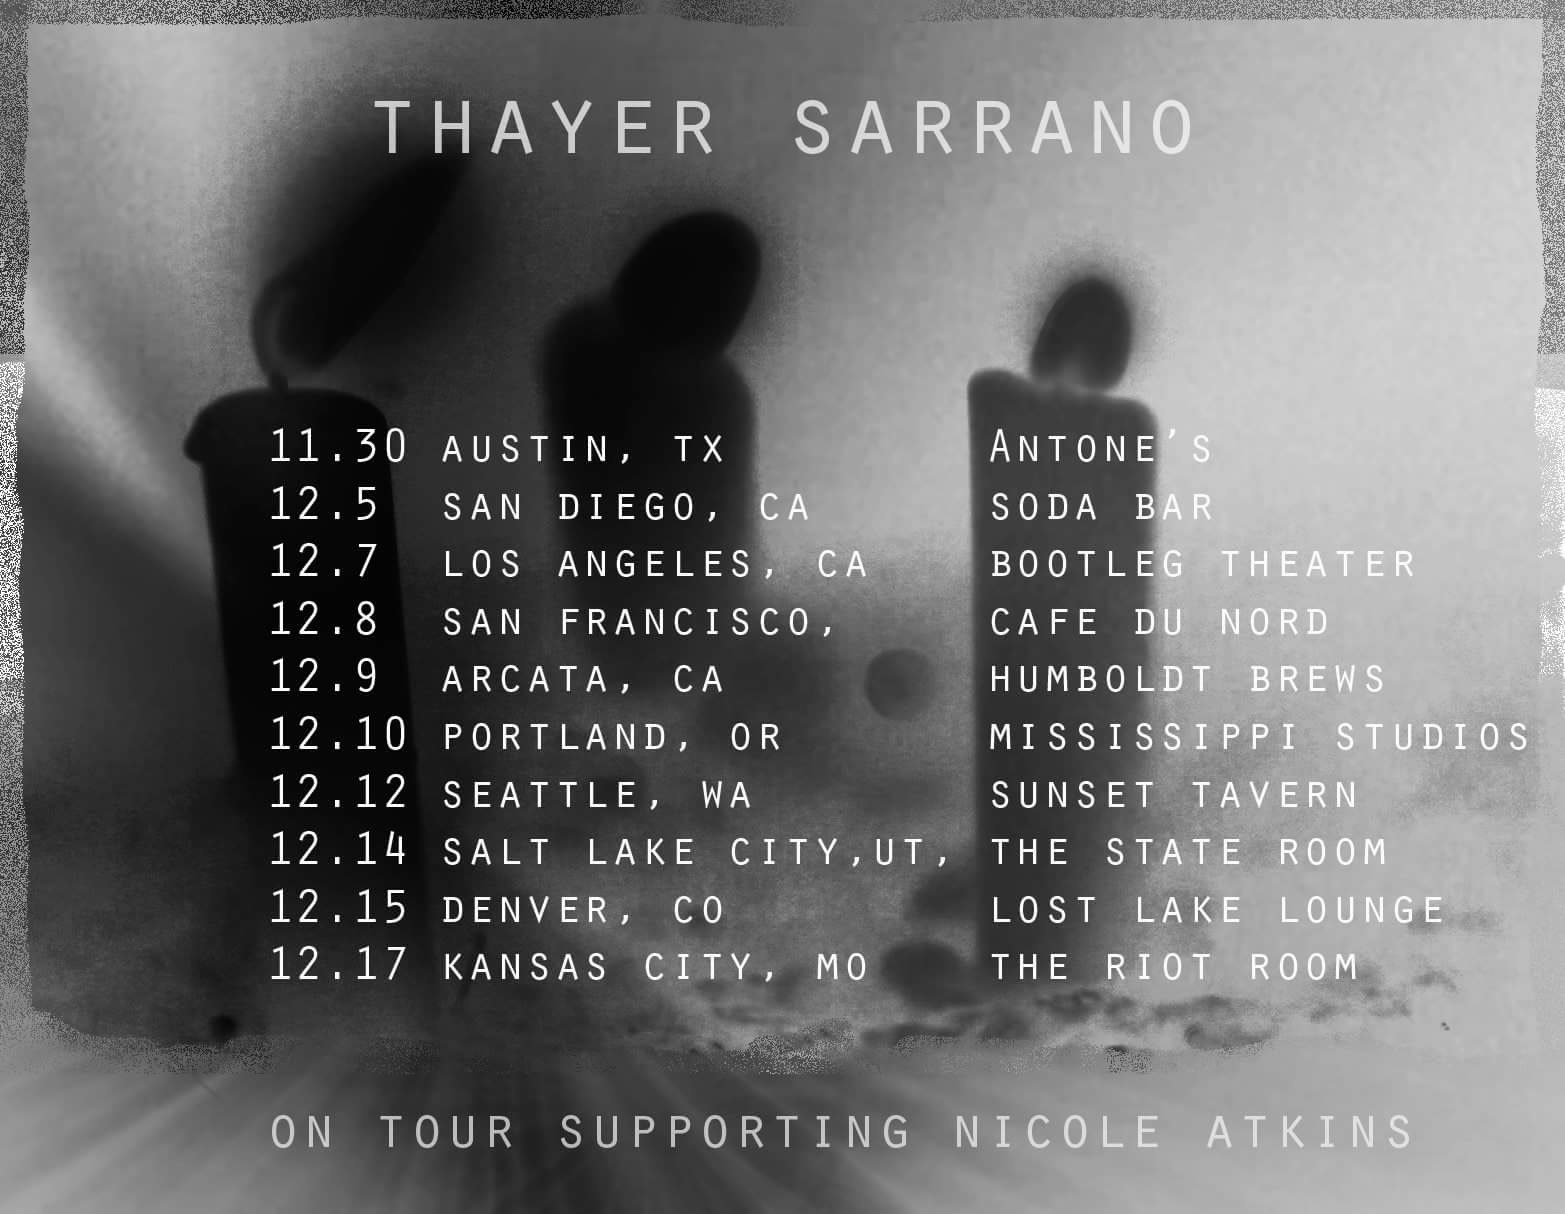 Thayer Sarrano - Tour of The West (2017)